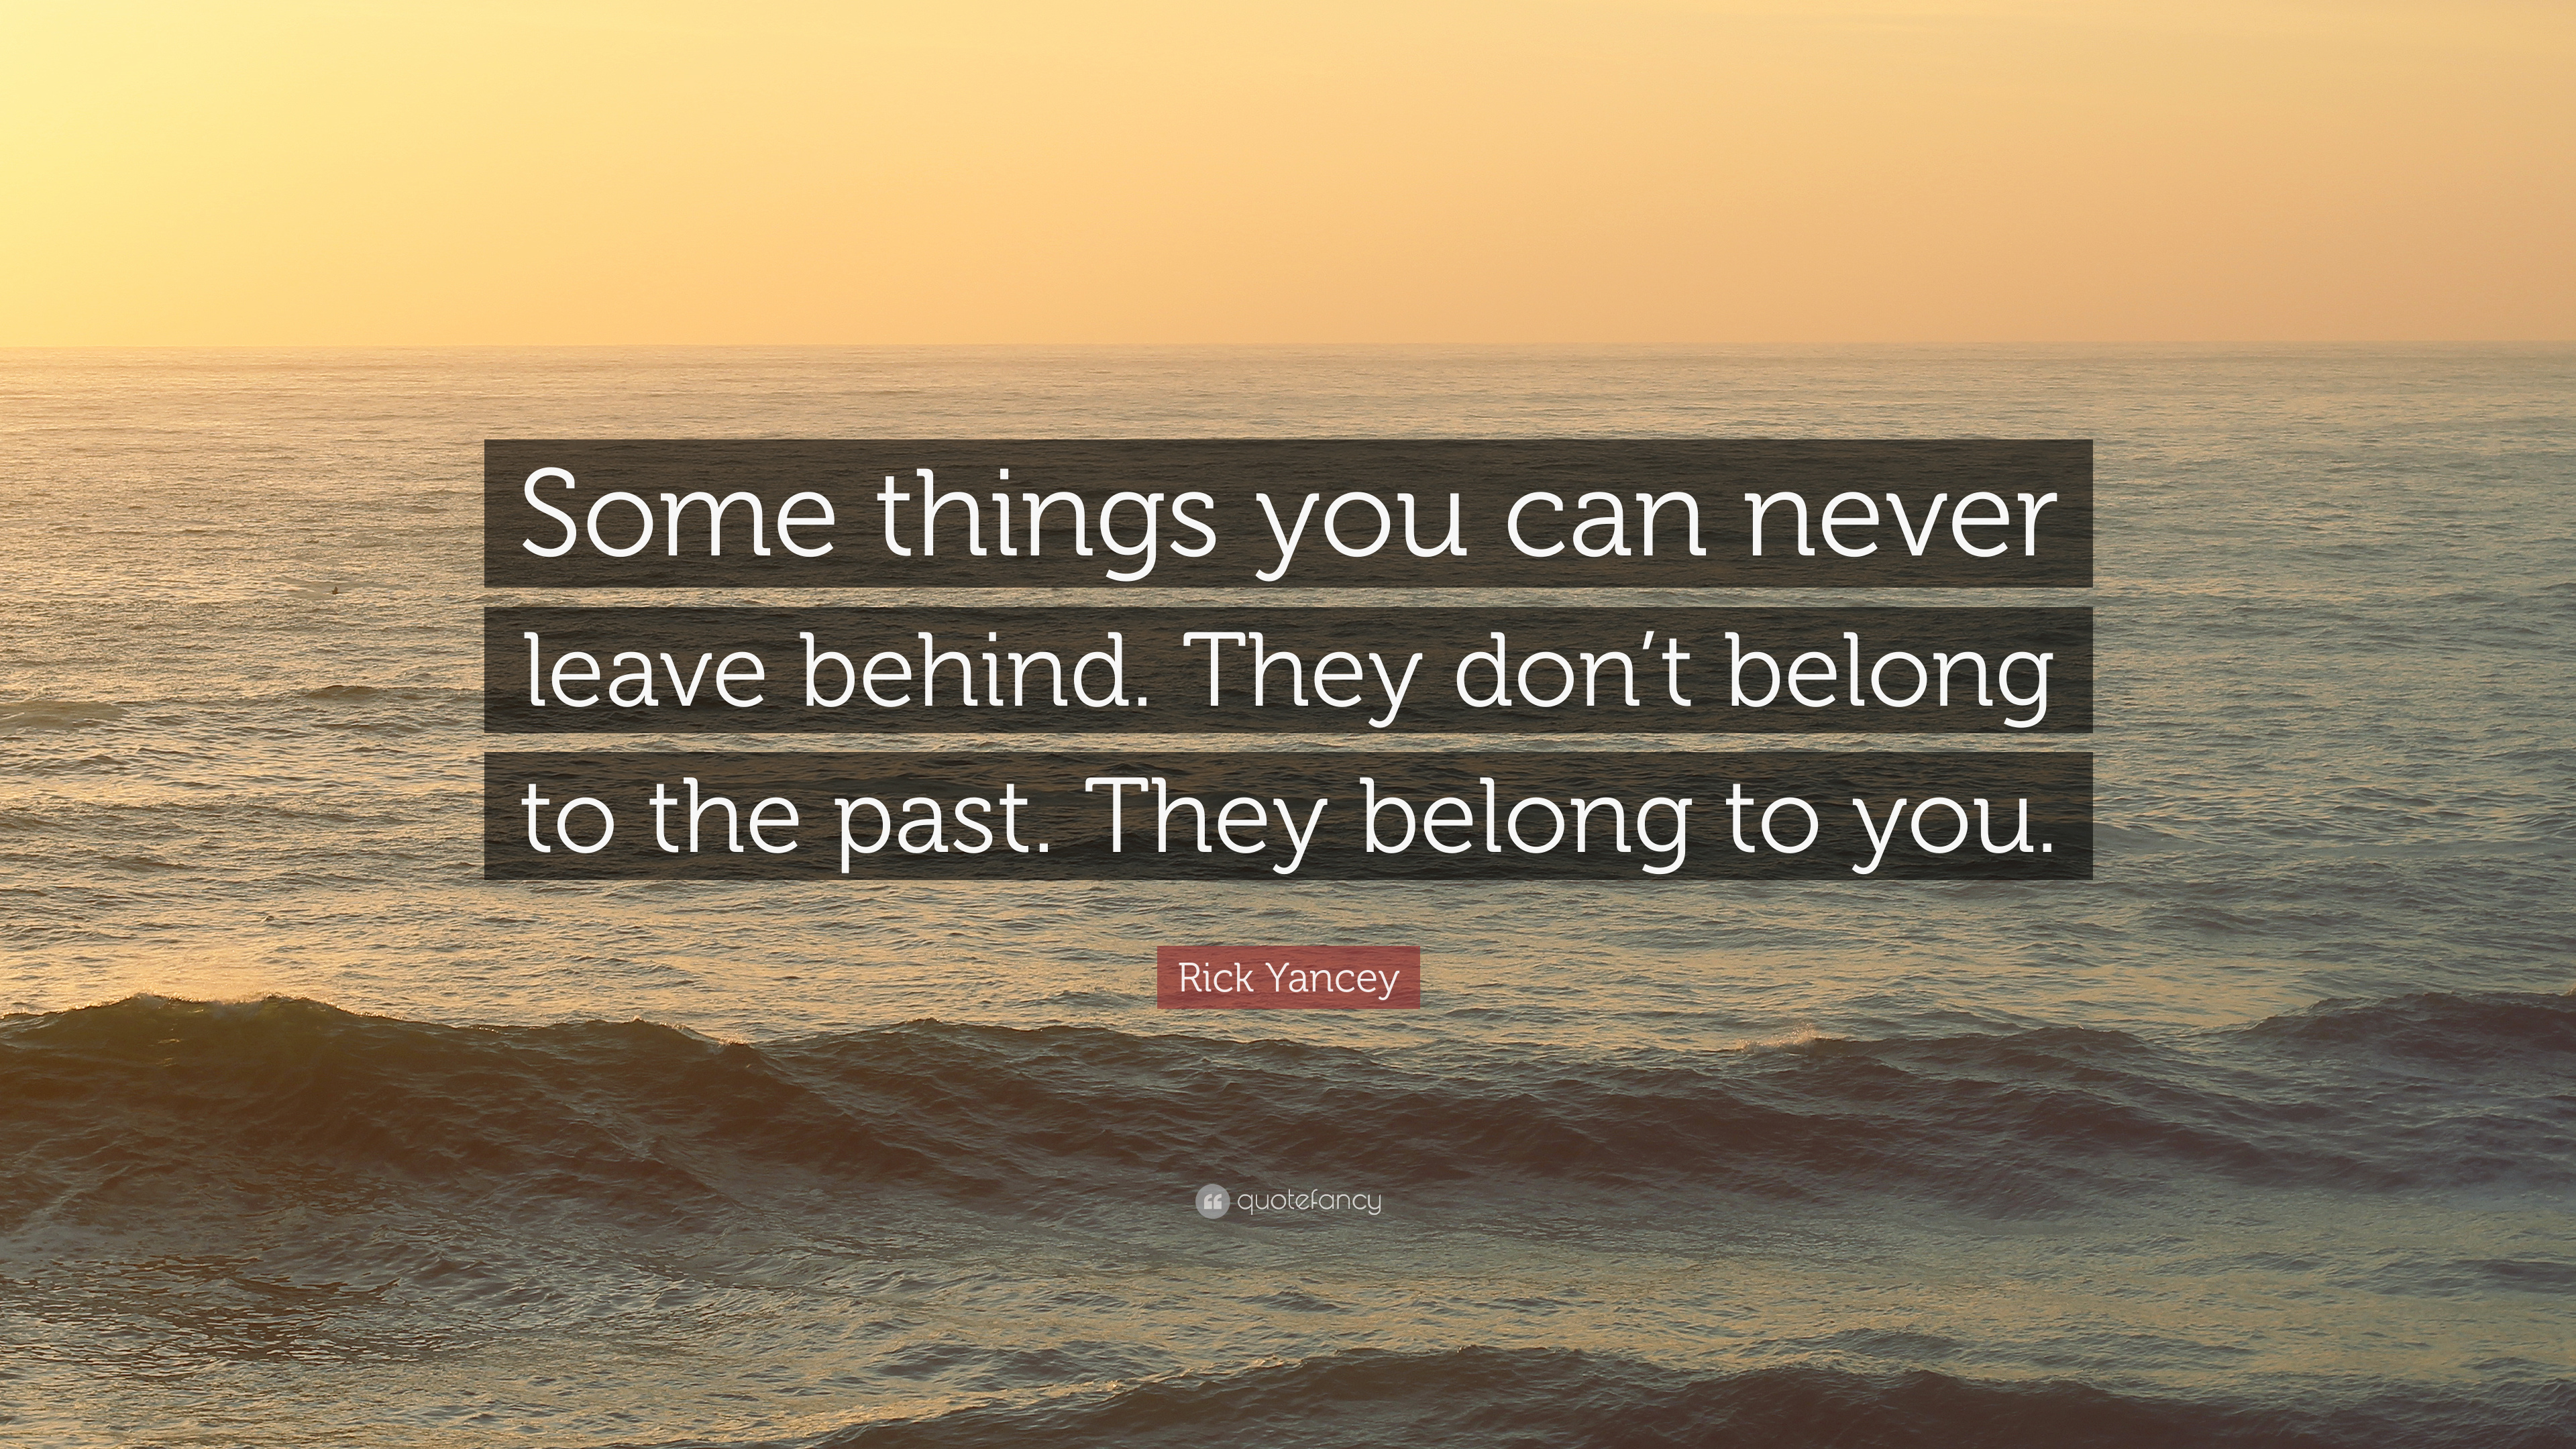 Rick Yancey Quote Some Things You Can Never Leave Behind They Don